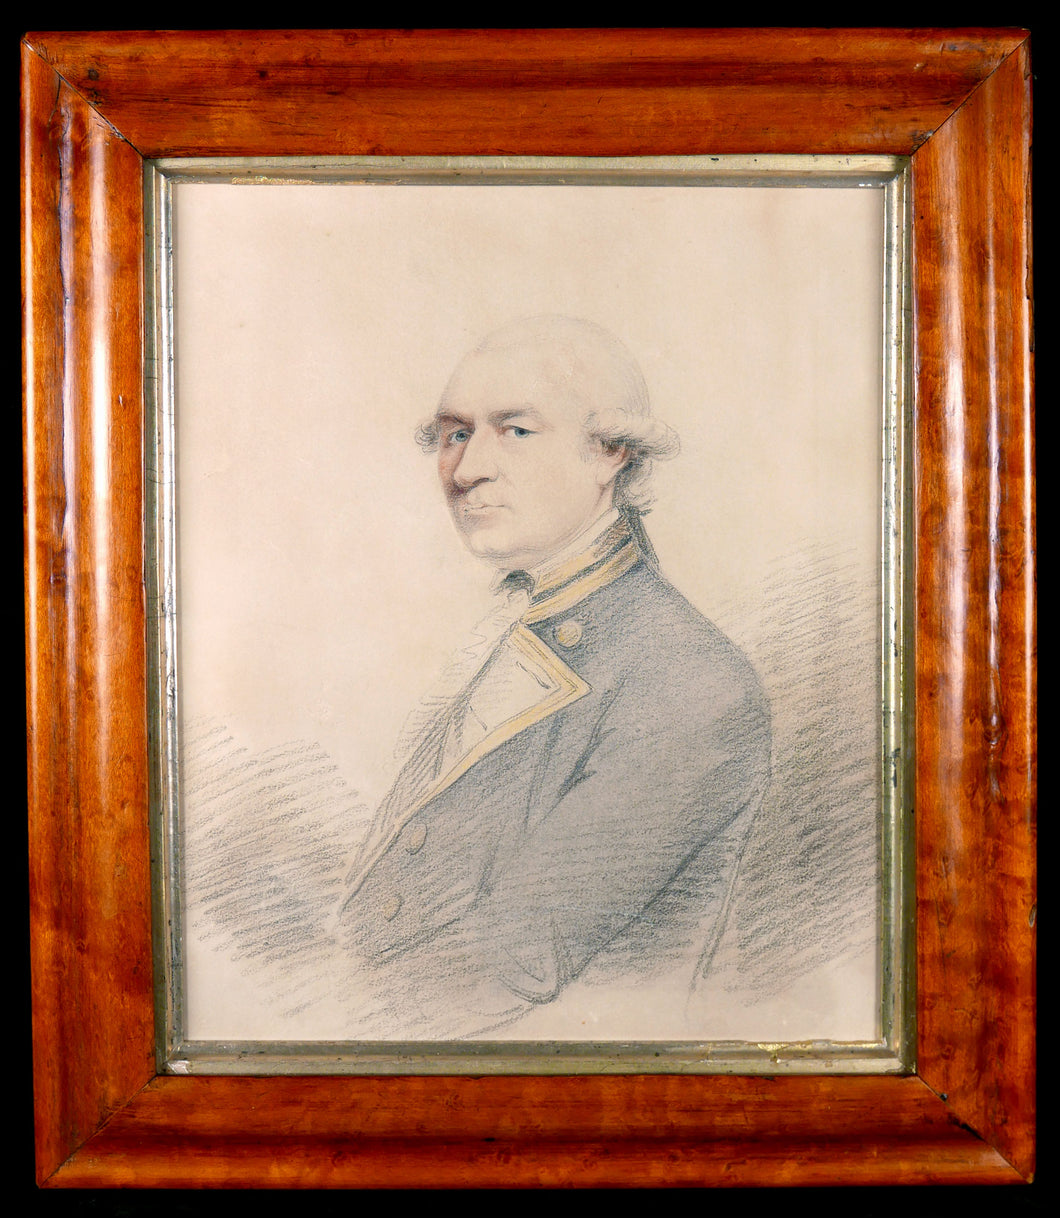 Portrait of Captain Sir Richard Pearson R.N. - Nemesis of Captain John Paul Jones, U.S.N., Circa 1810